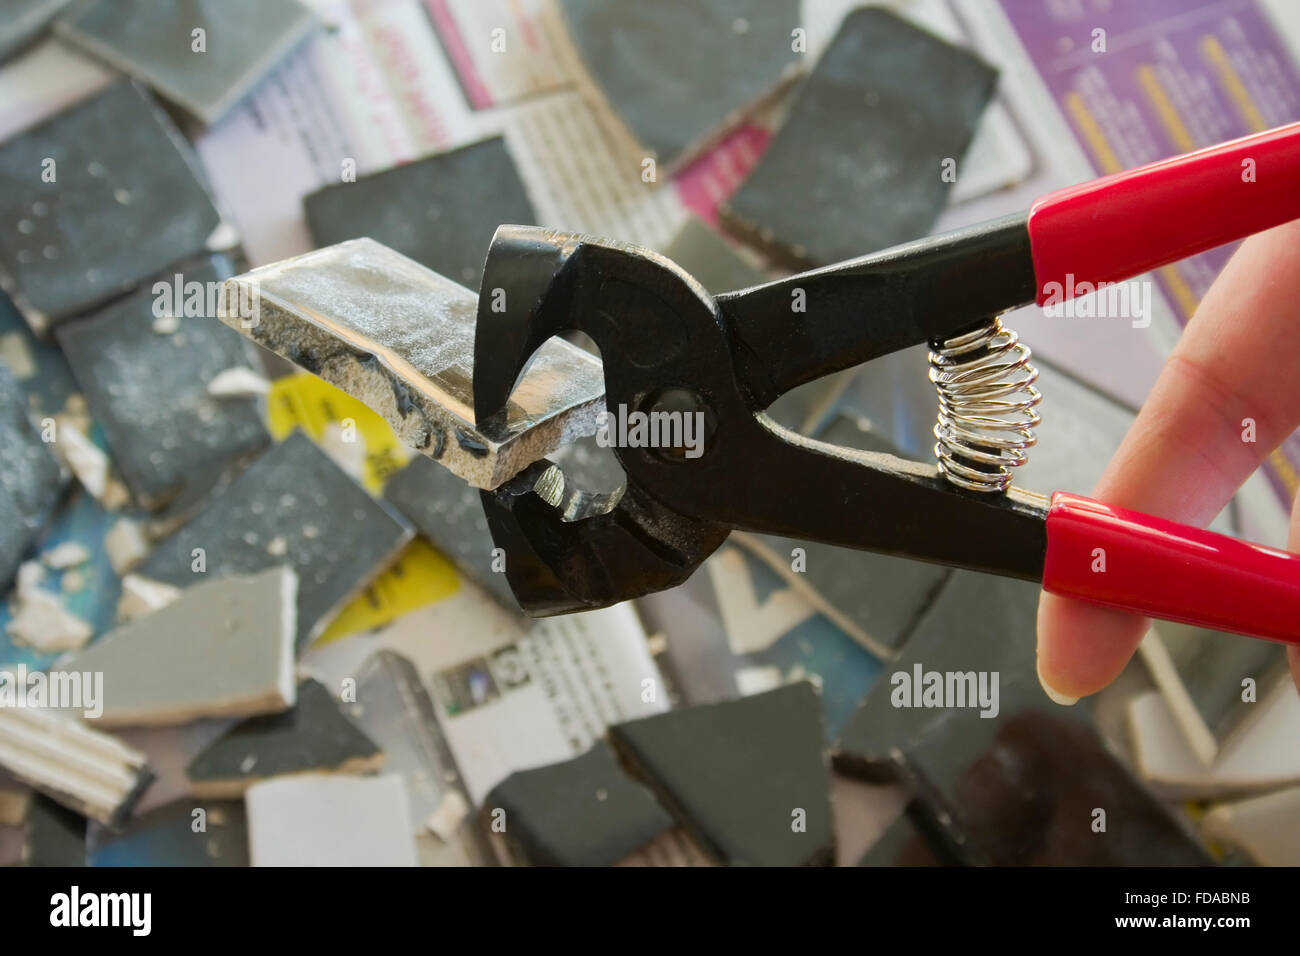 Image of a tile nipper, for cutting ceramic tiles. - Stock Image